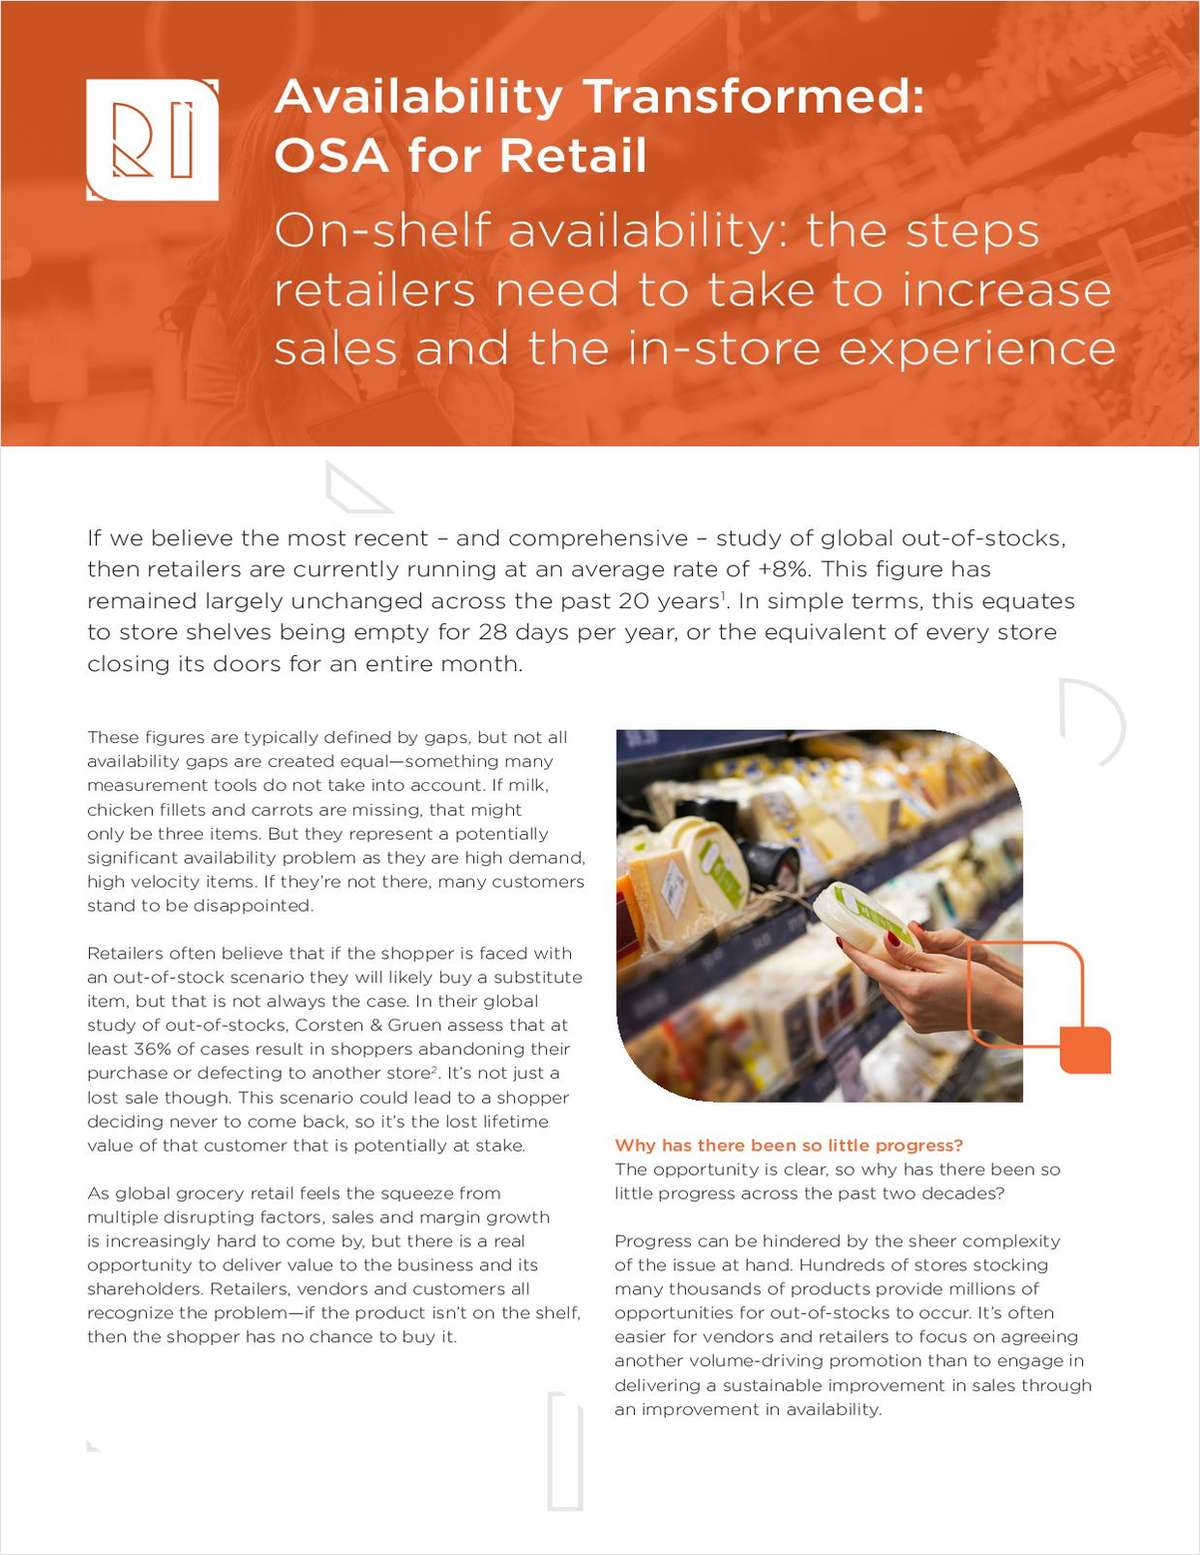 Availability Transformed: OSA for Retail